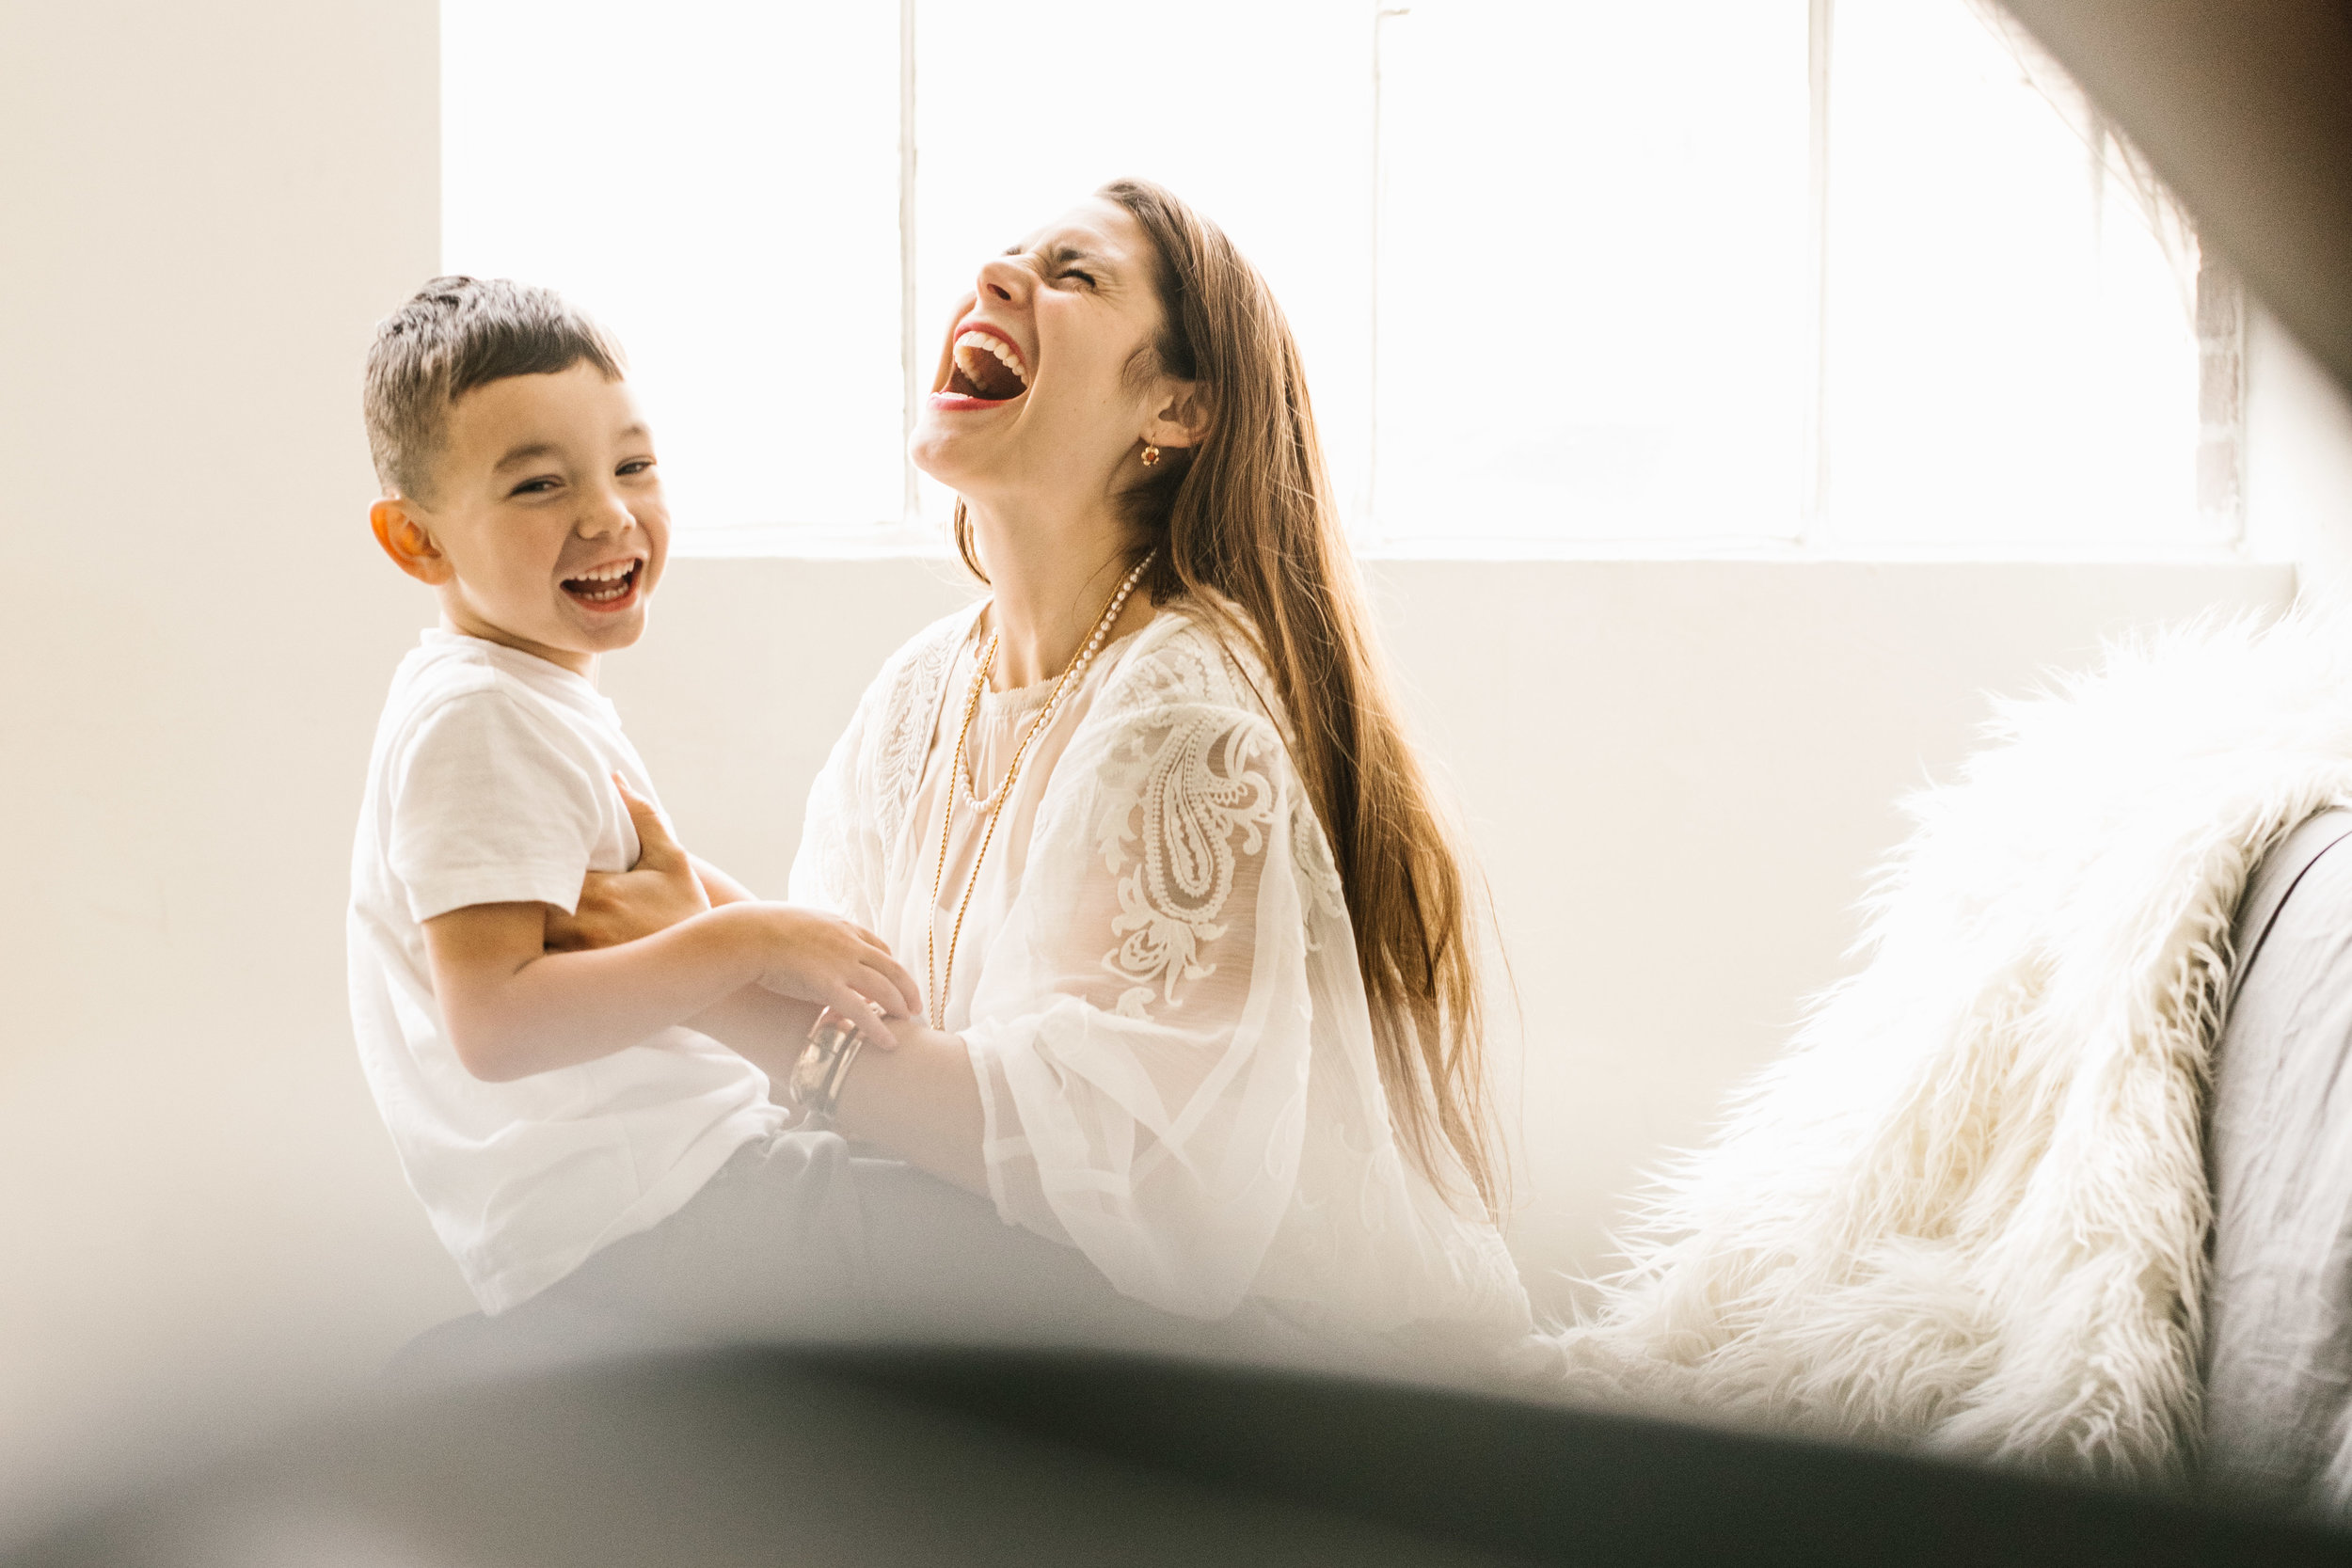 Beautiful intimate authentic mother and children seattle family photography session by Chelsea Macor Photography #seattlefamilyphotographer #seattlemotherhoodportraits #naturallightphotography #authenticfamilyphotos